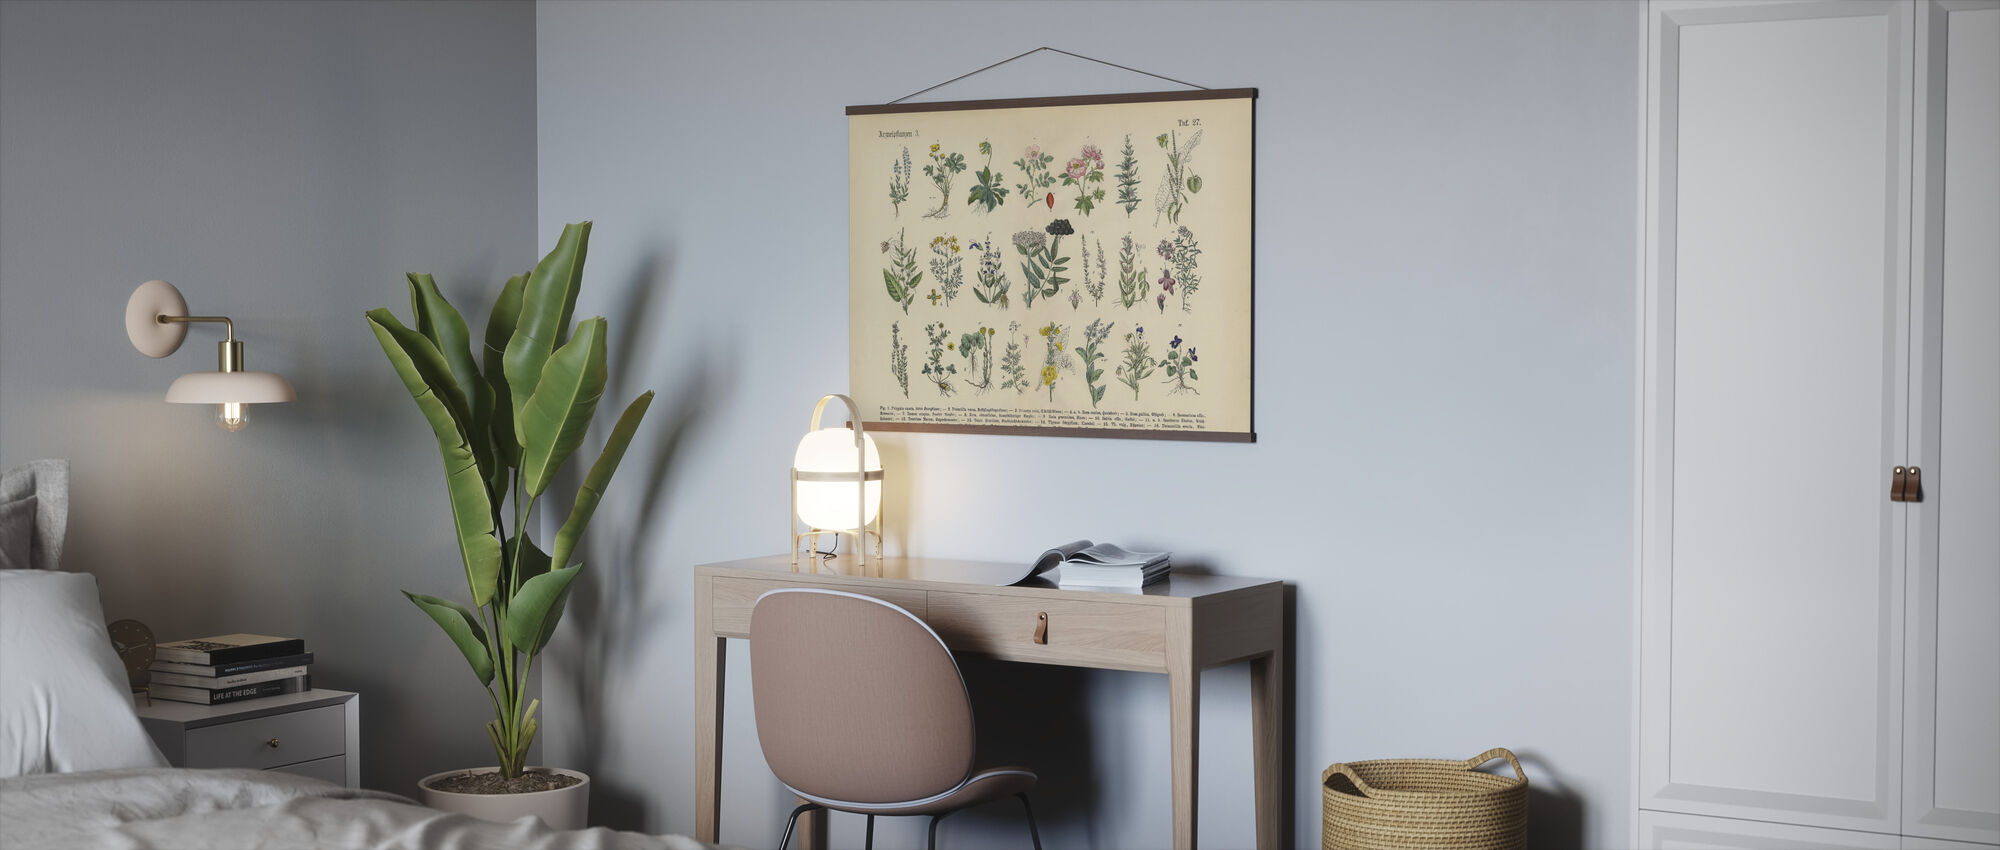 Medicinal and Herbal Plants - Poster - Office